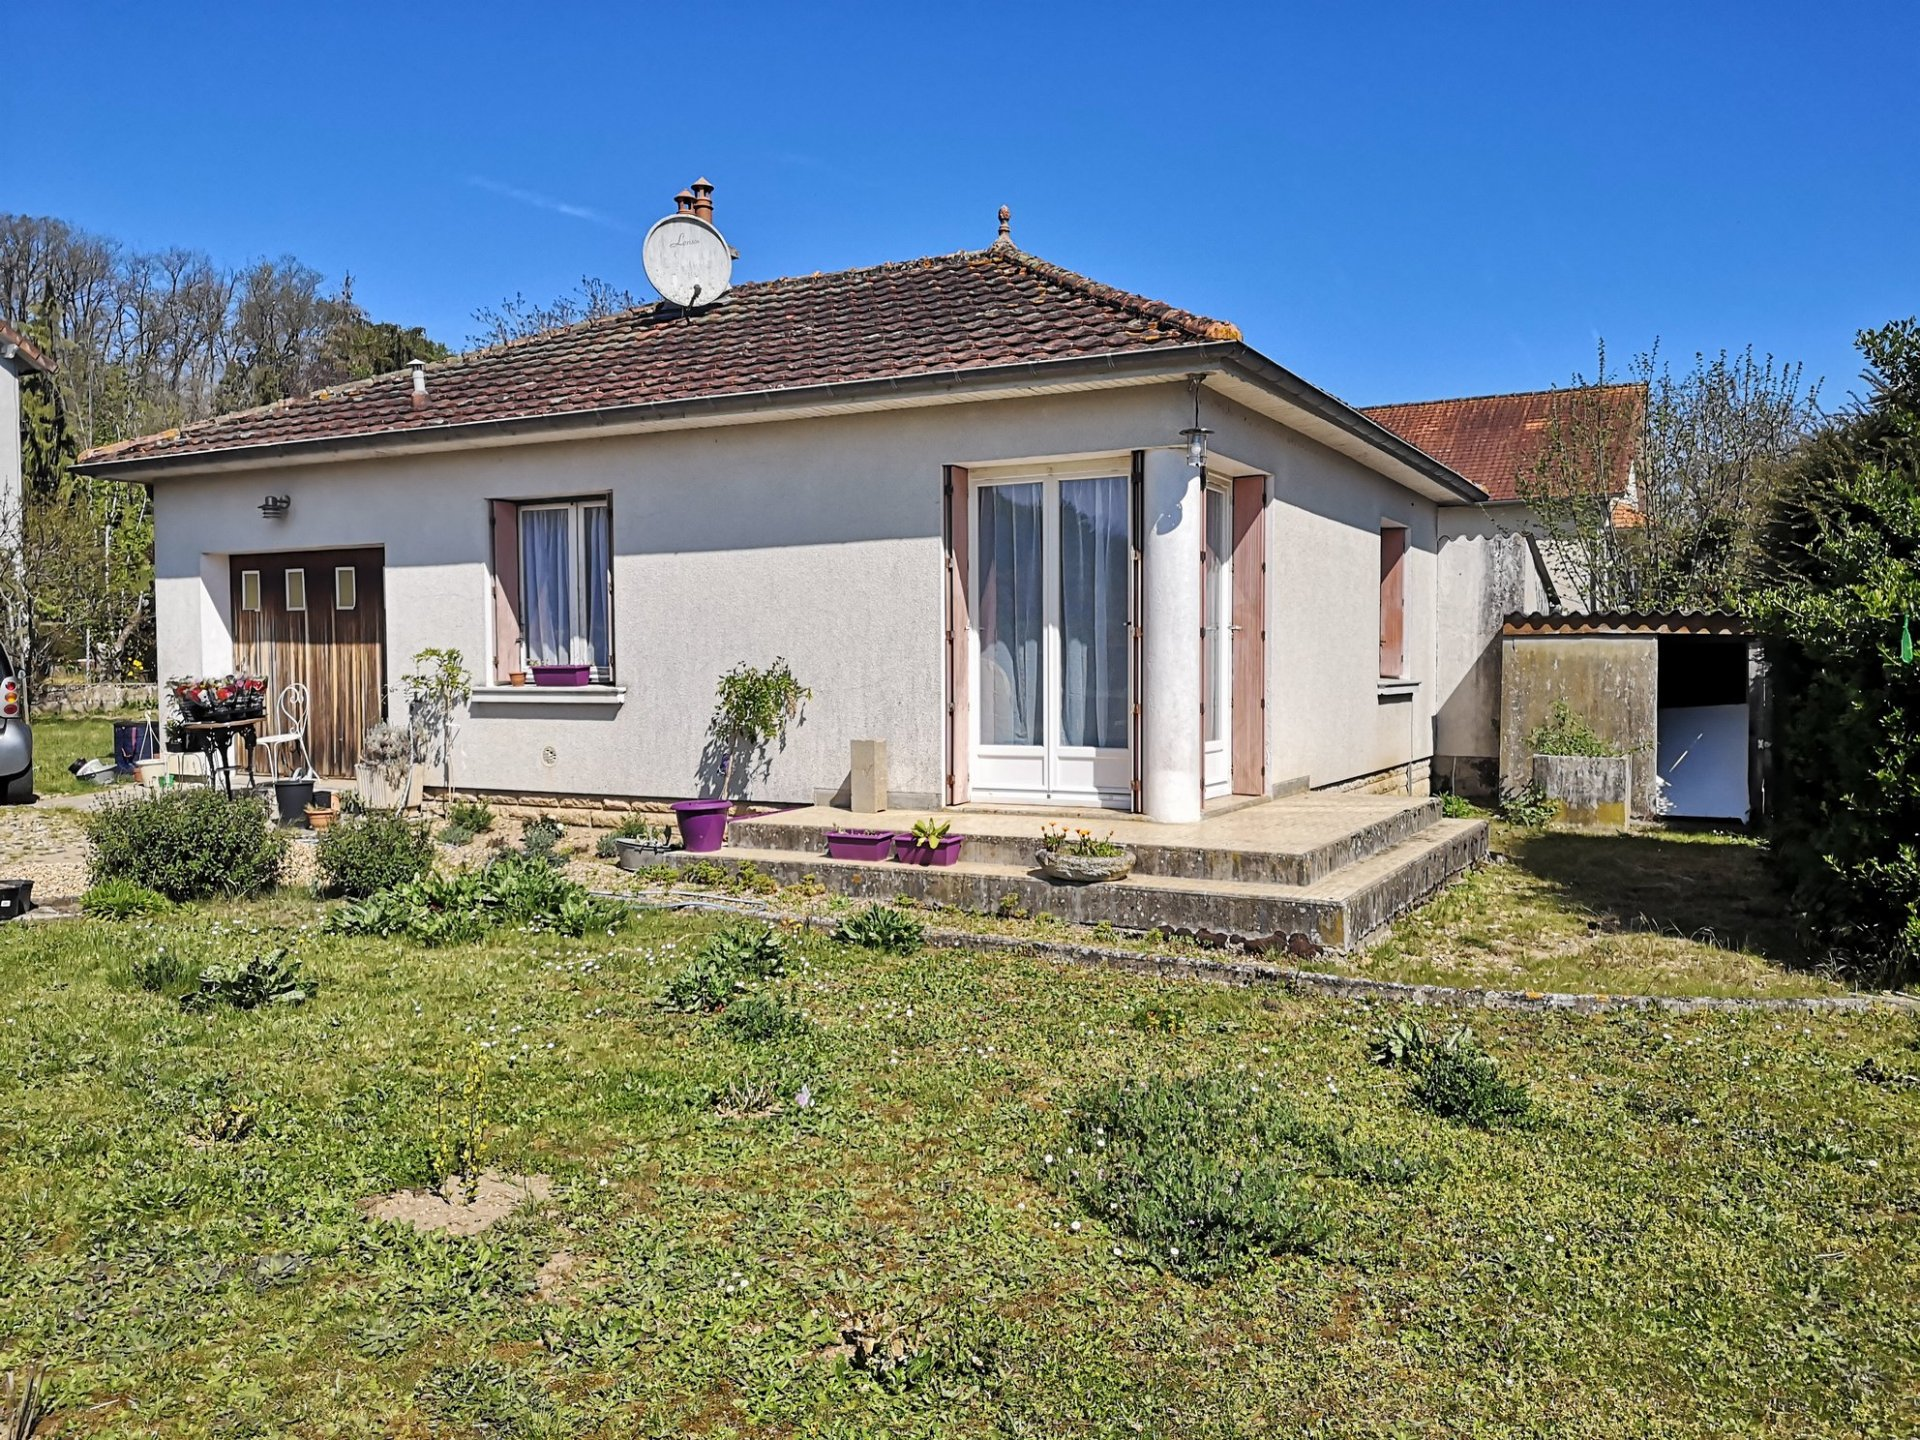 Well situated detached village property, possibility of making into 3 beds, ideal first purchase.